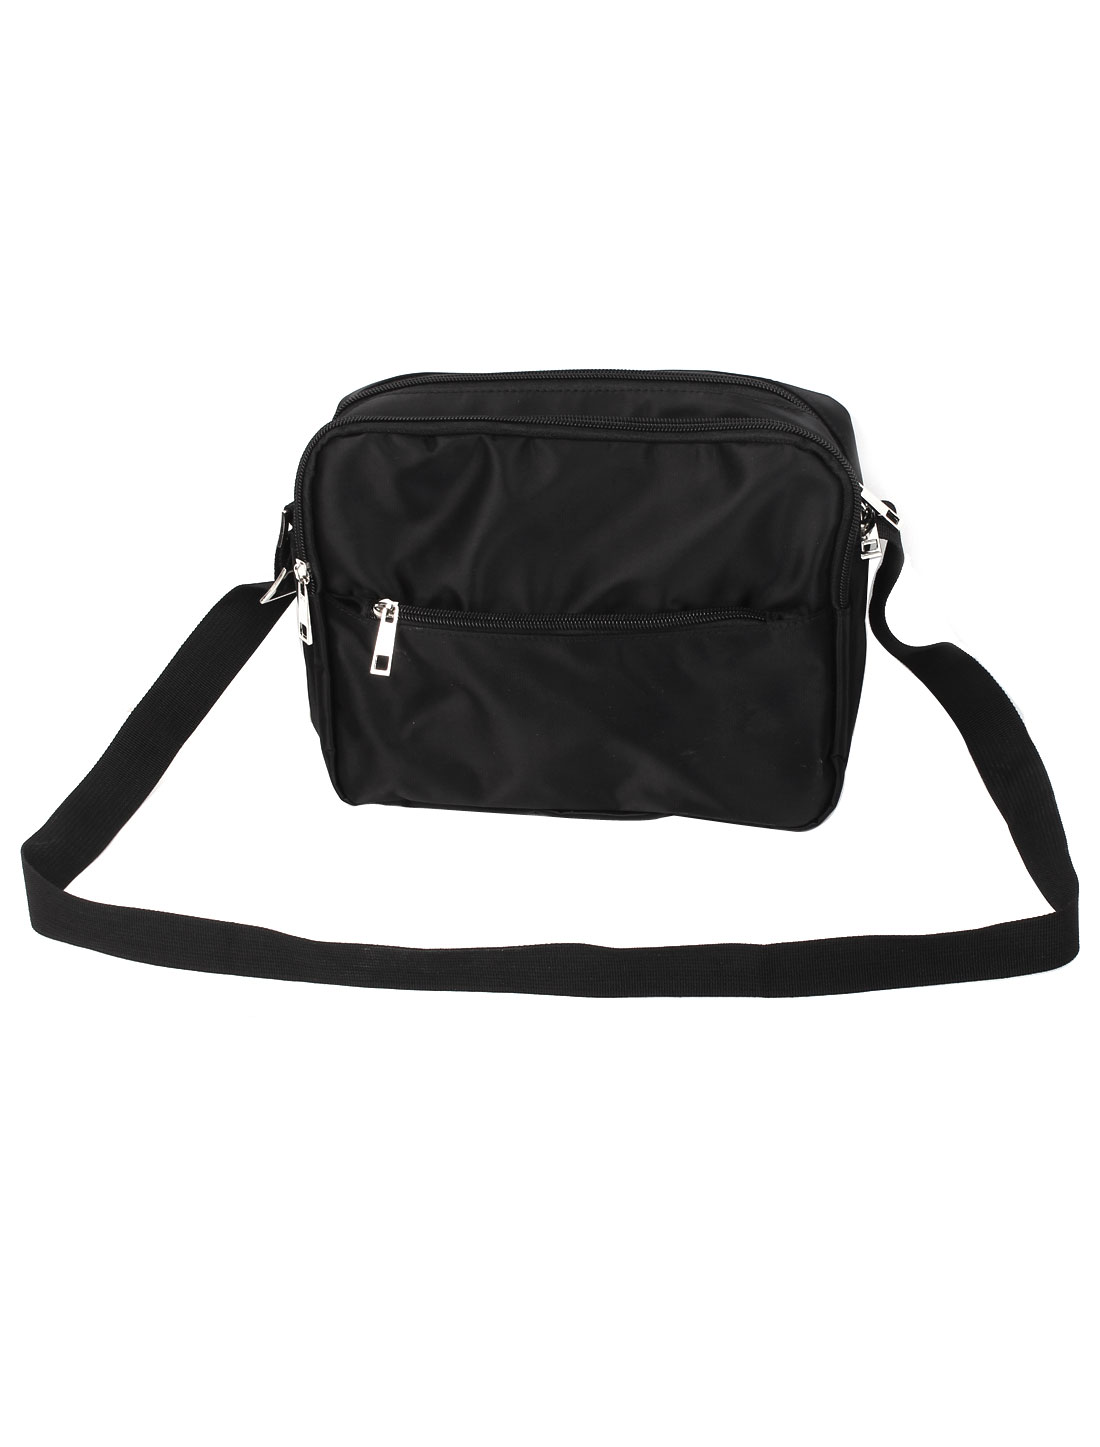 Mens Adjustable Strap Zippered 3 Pockets Nylon Shoulder Bag Black